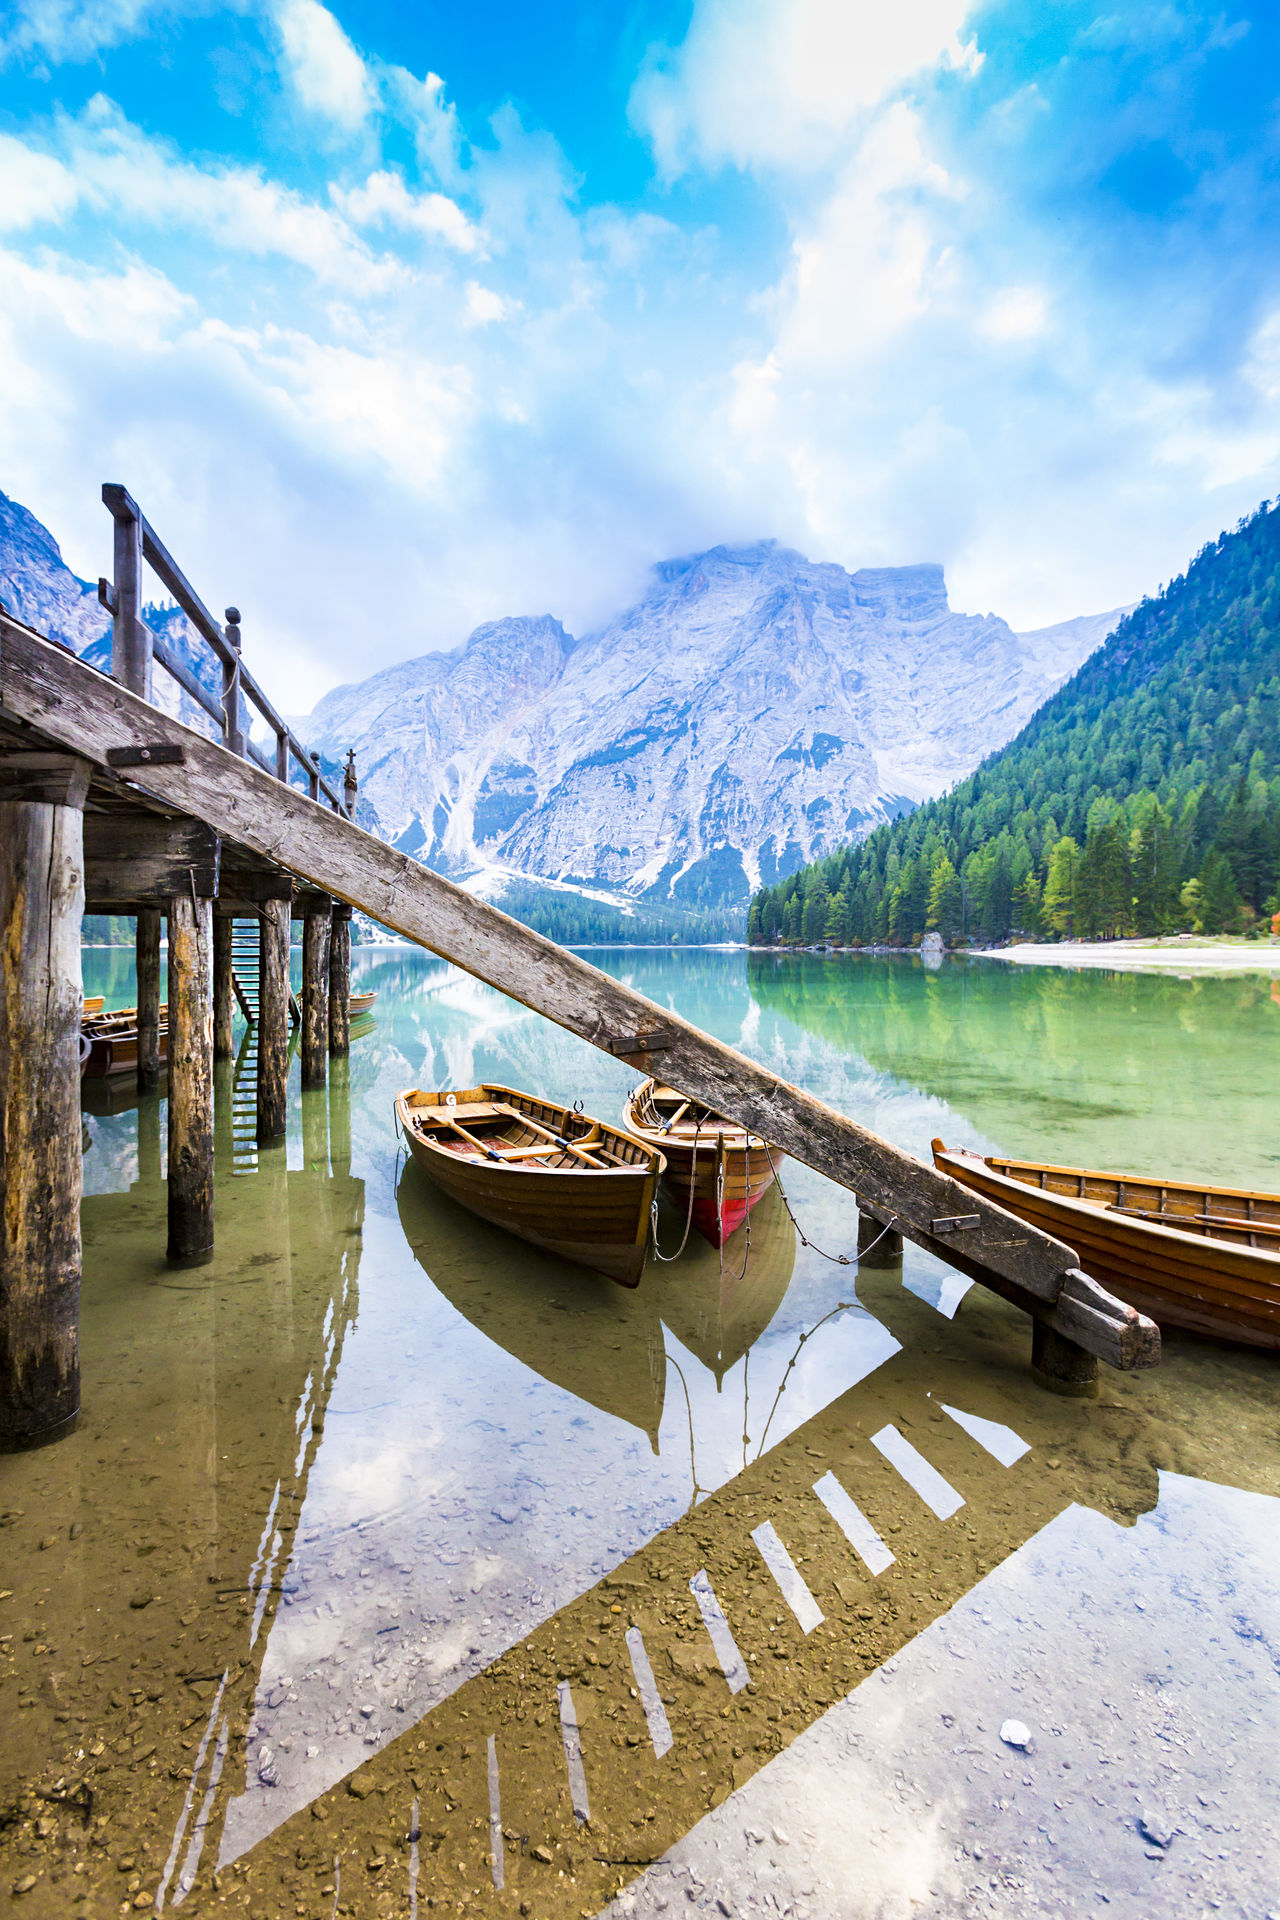 Old wooden boats at the Lago di Braies, South Tyrol Alps Alto Adige Boat Braies Calm Destination Dolomites Empty Gondola - Traditional Boat Hiking Holidays Innichen Italy Lago Lake Lake View Mirror Prags Pragser Wildsee Reflection Scenery Sexten South Tyrol Südtirol Travel